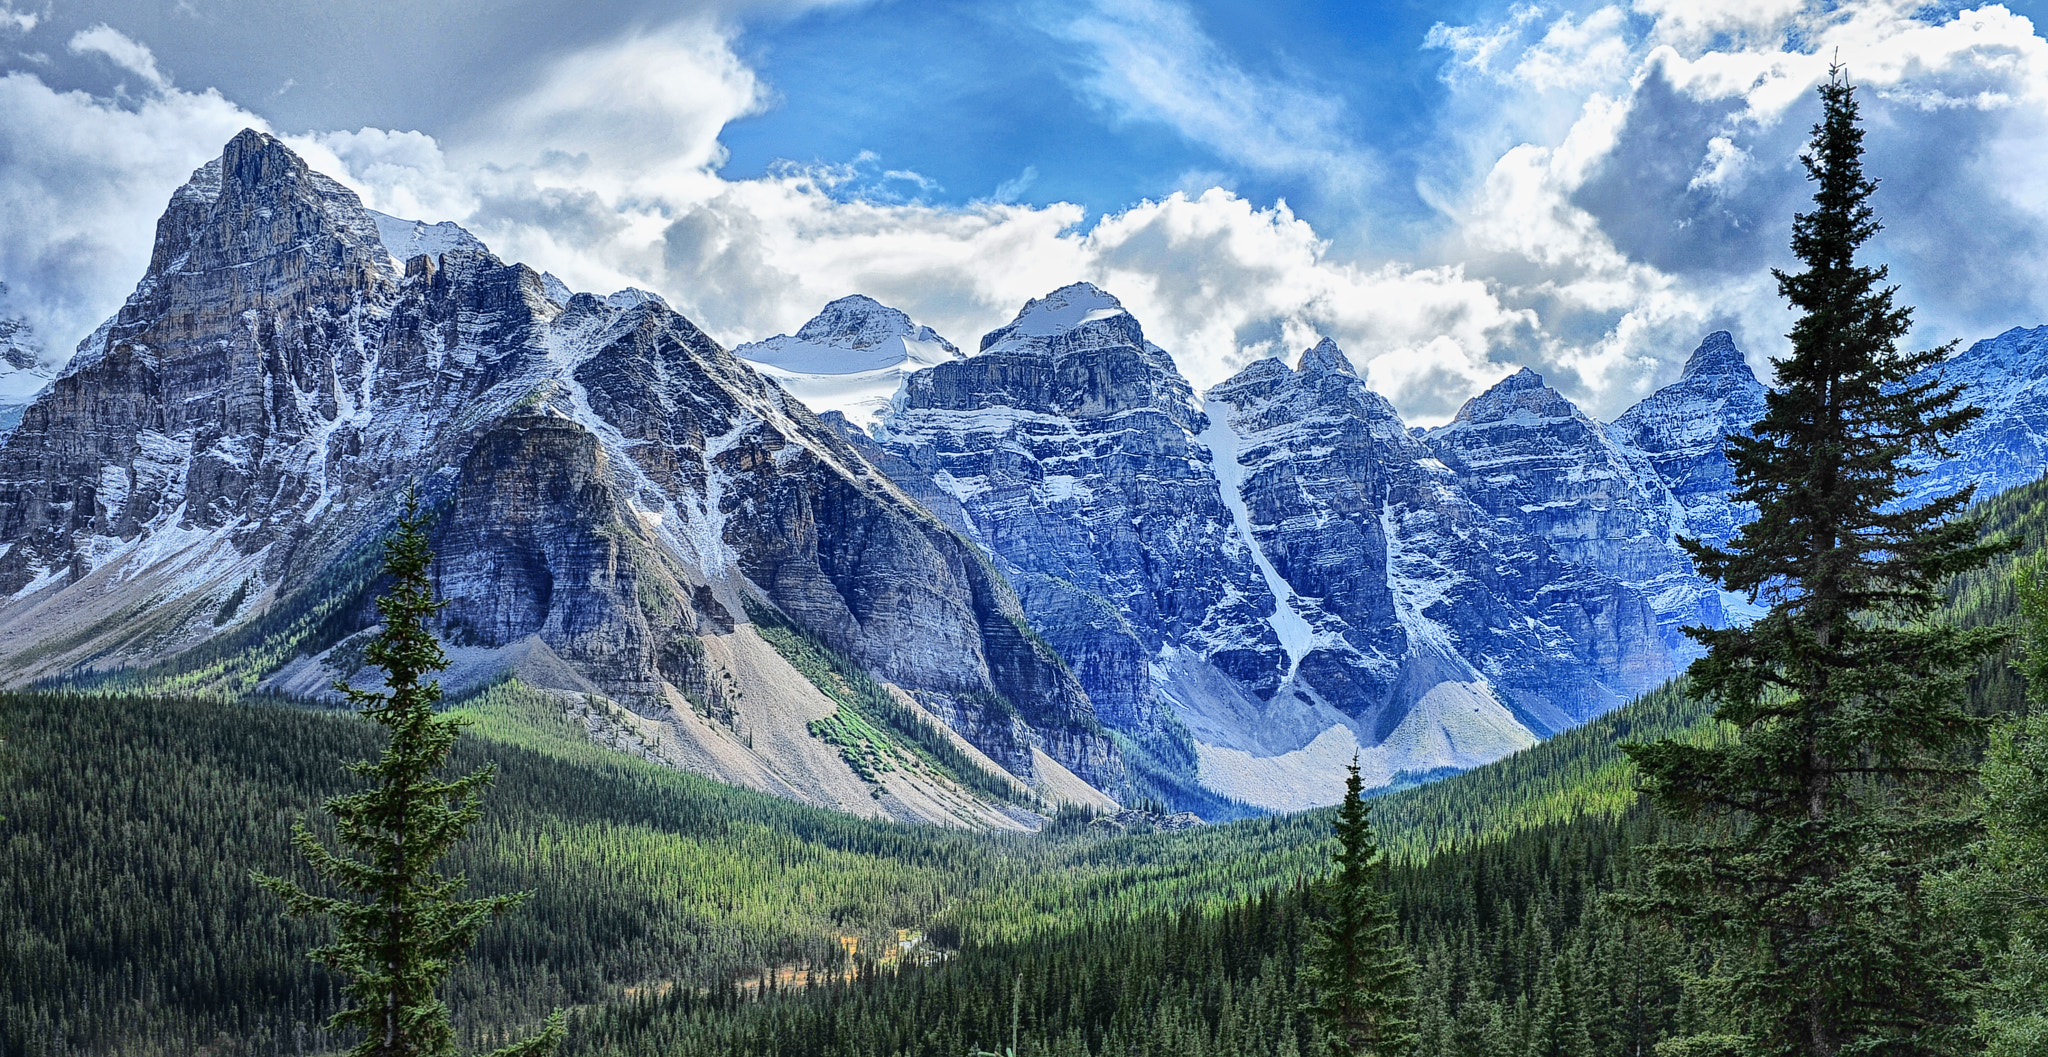 Photograph Canadian Grandeur by Jeff Clow on 500px